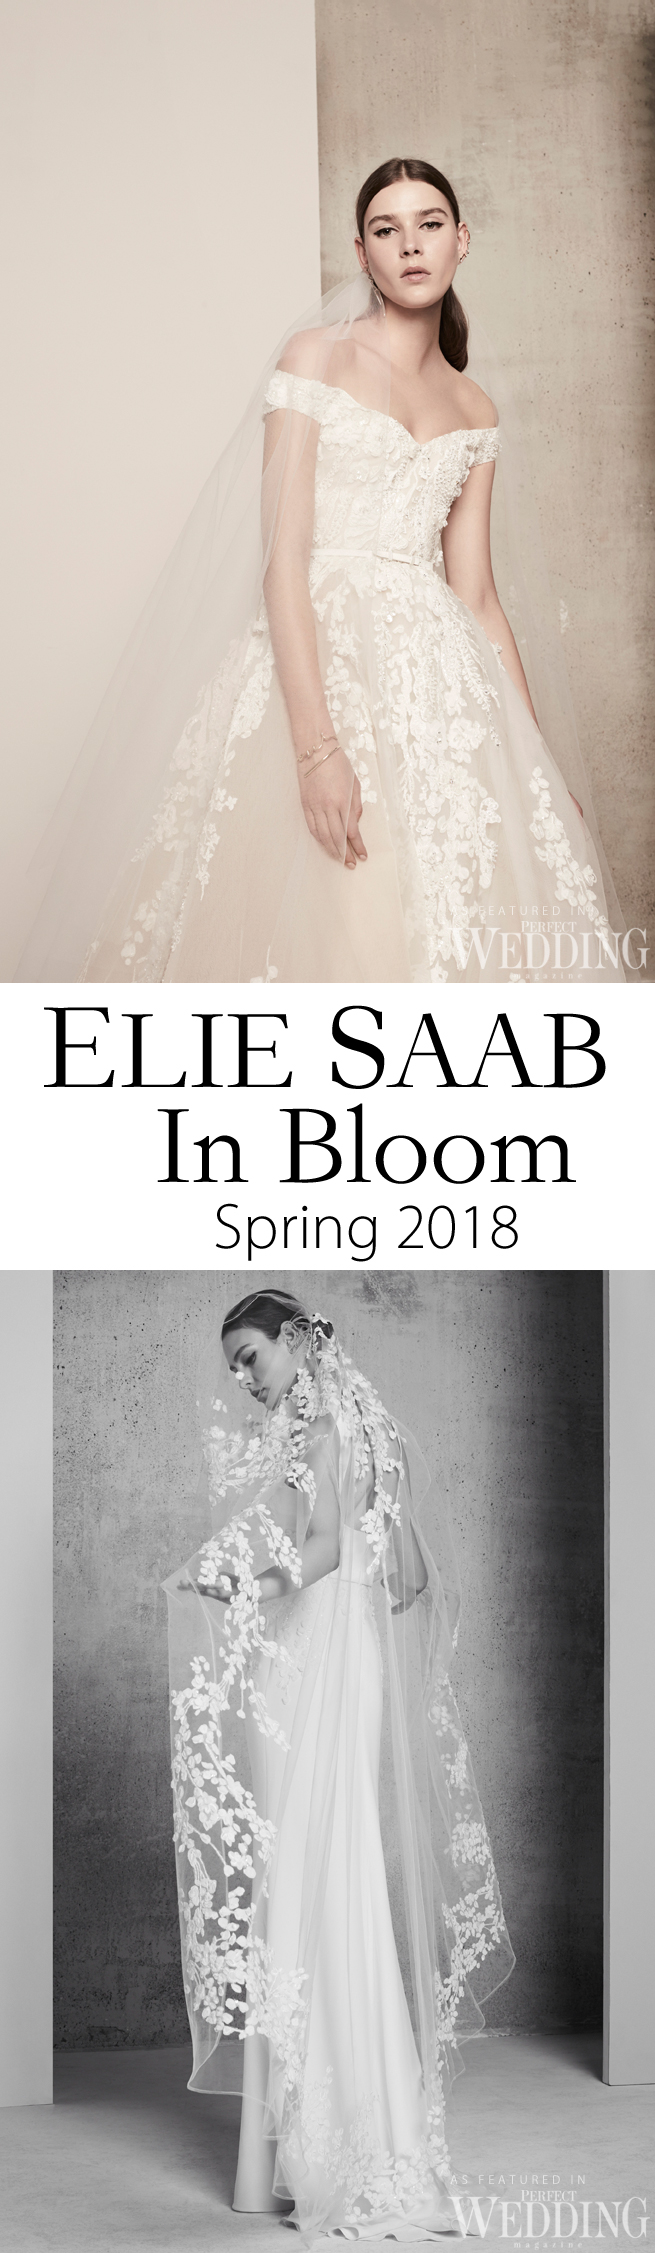 Elie Saab, Elie Saab Bridal, Elie Saab RTW Bridal, In Blomm, Elie Saab 2018 bridal, Perfect Wedding Magazine, Perfect Wedding Blog, 2018 bridal trends, haute couture